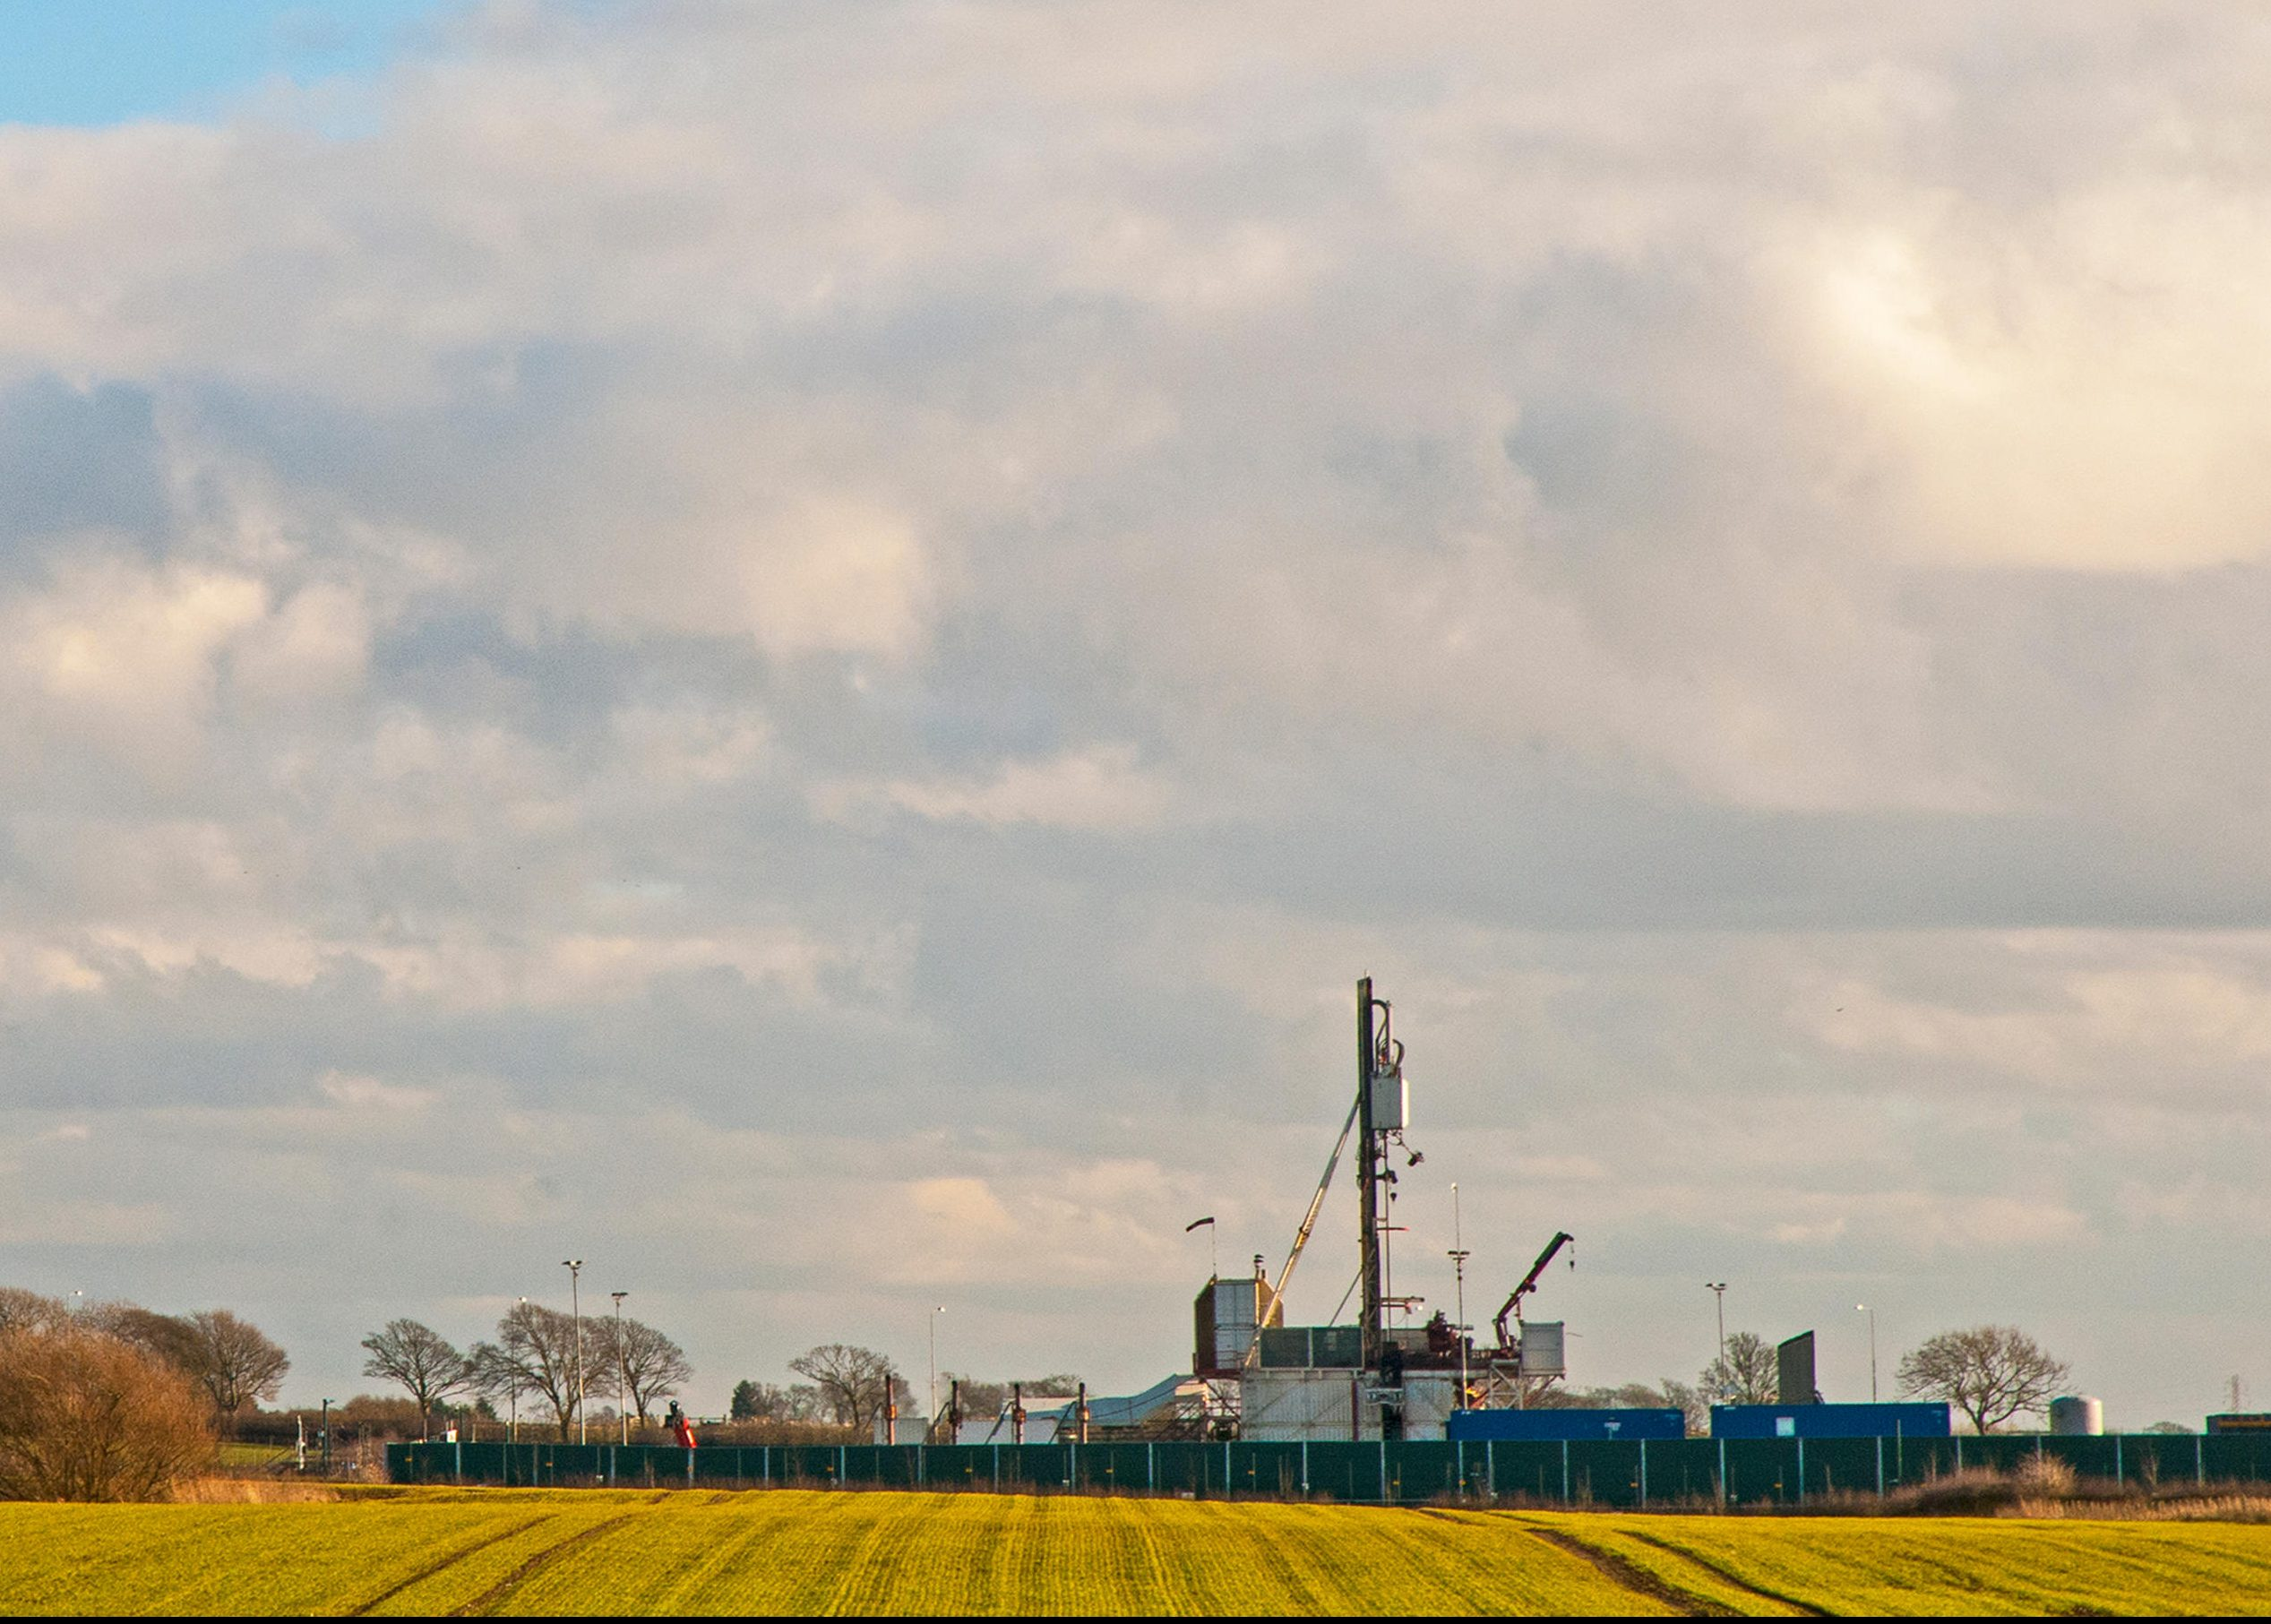 'The end of fracking in the UK': Campaigners claim victory as Lancashire drilling site begins shutdown - Country Life